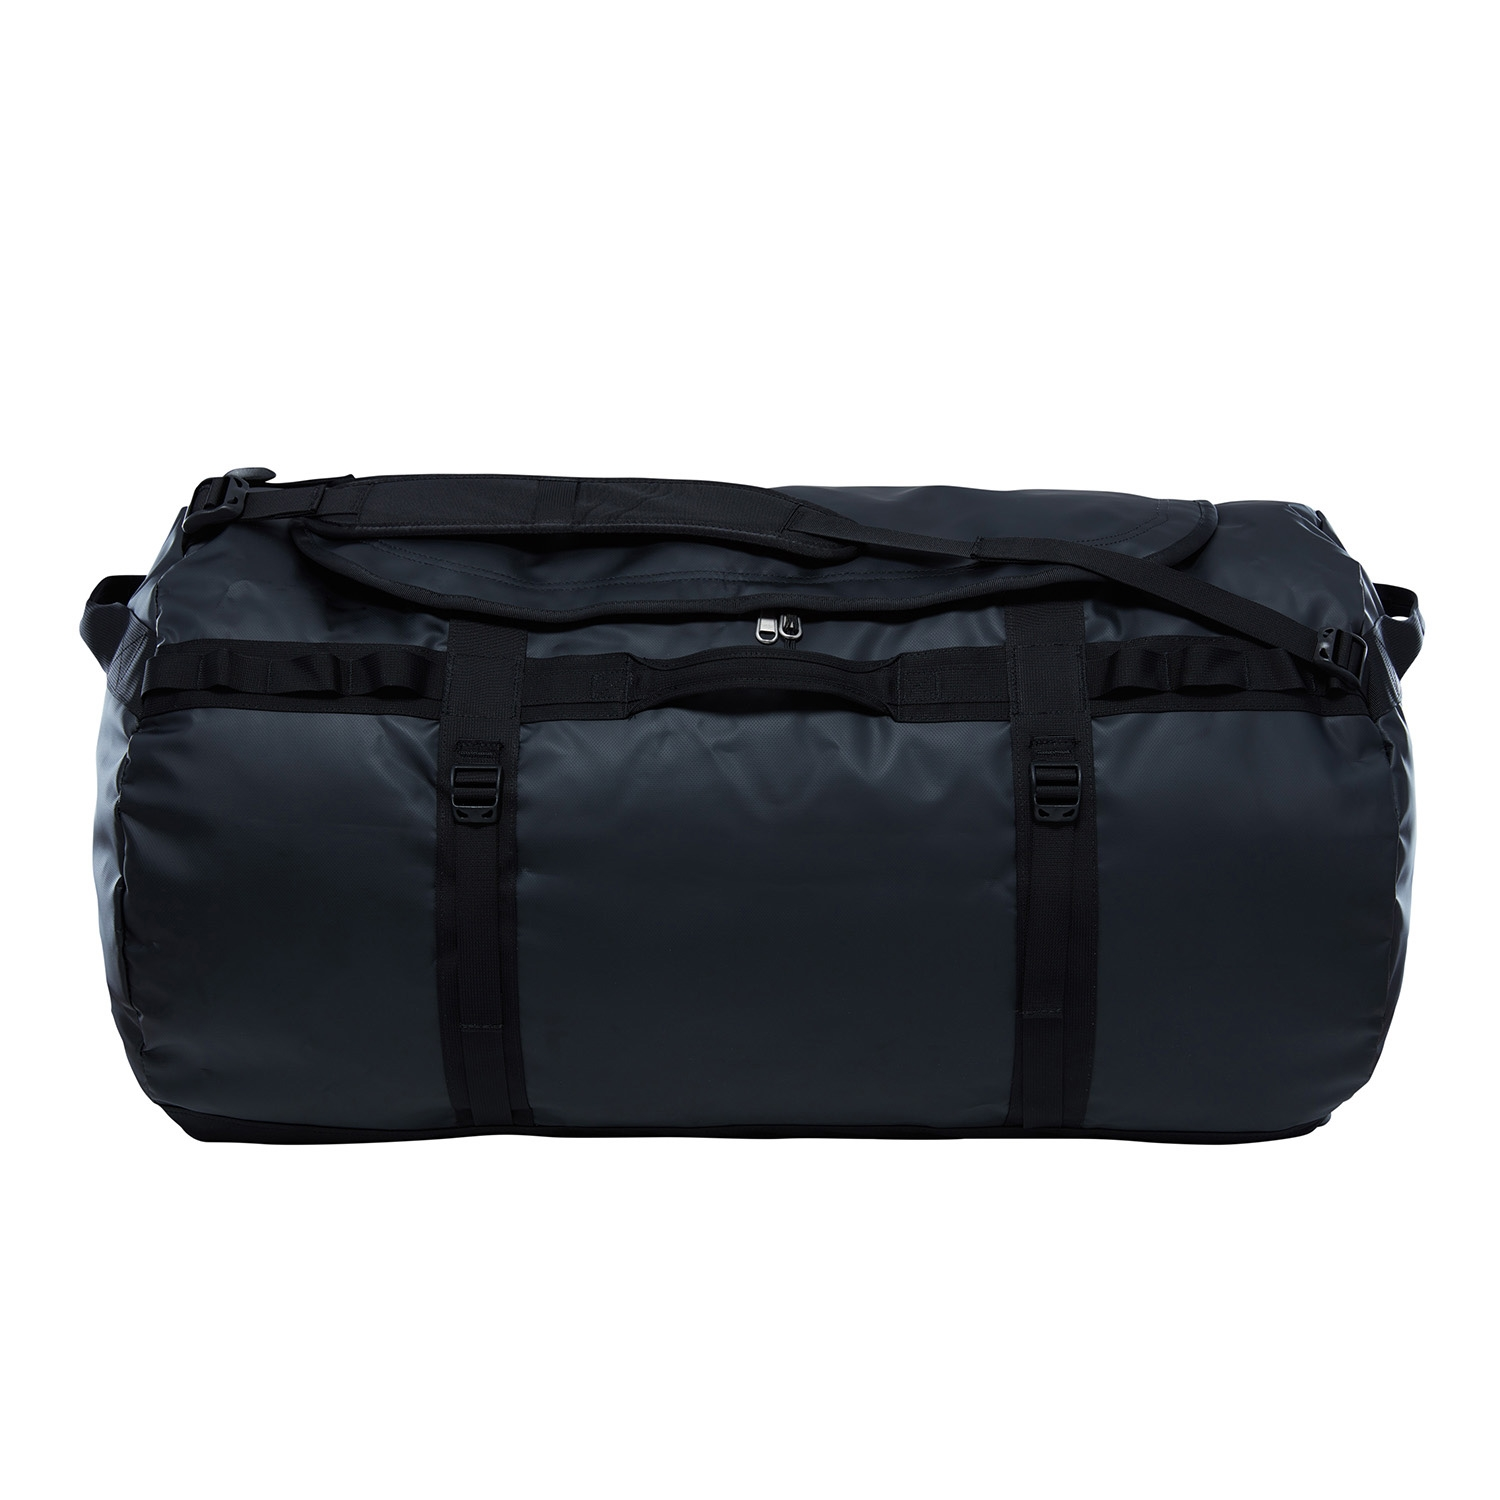 north face sac de voyage